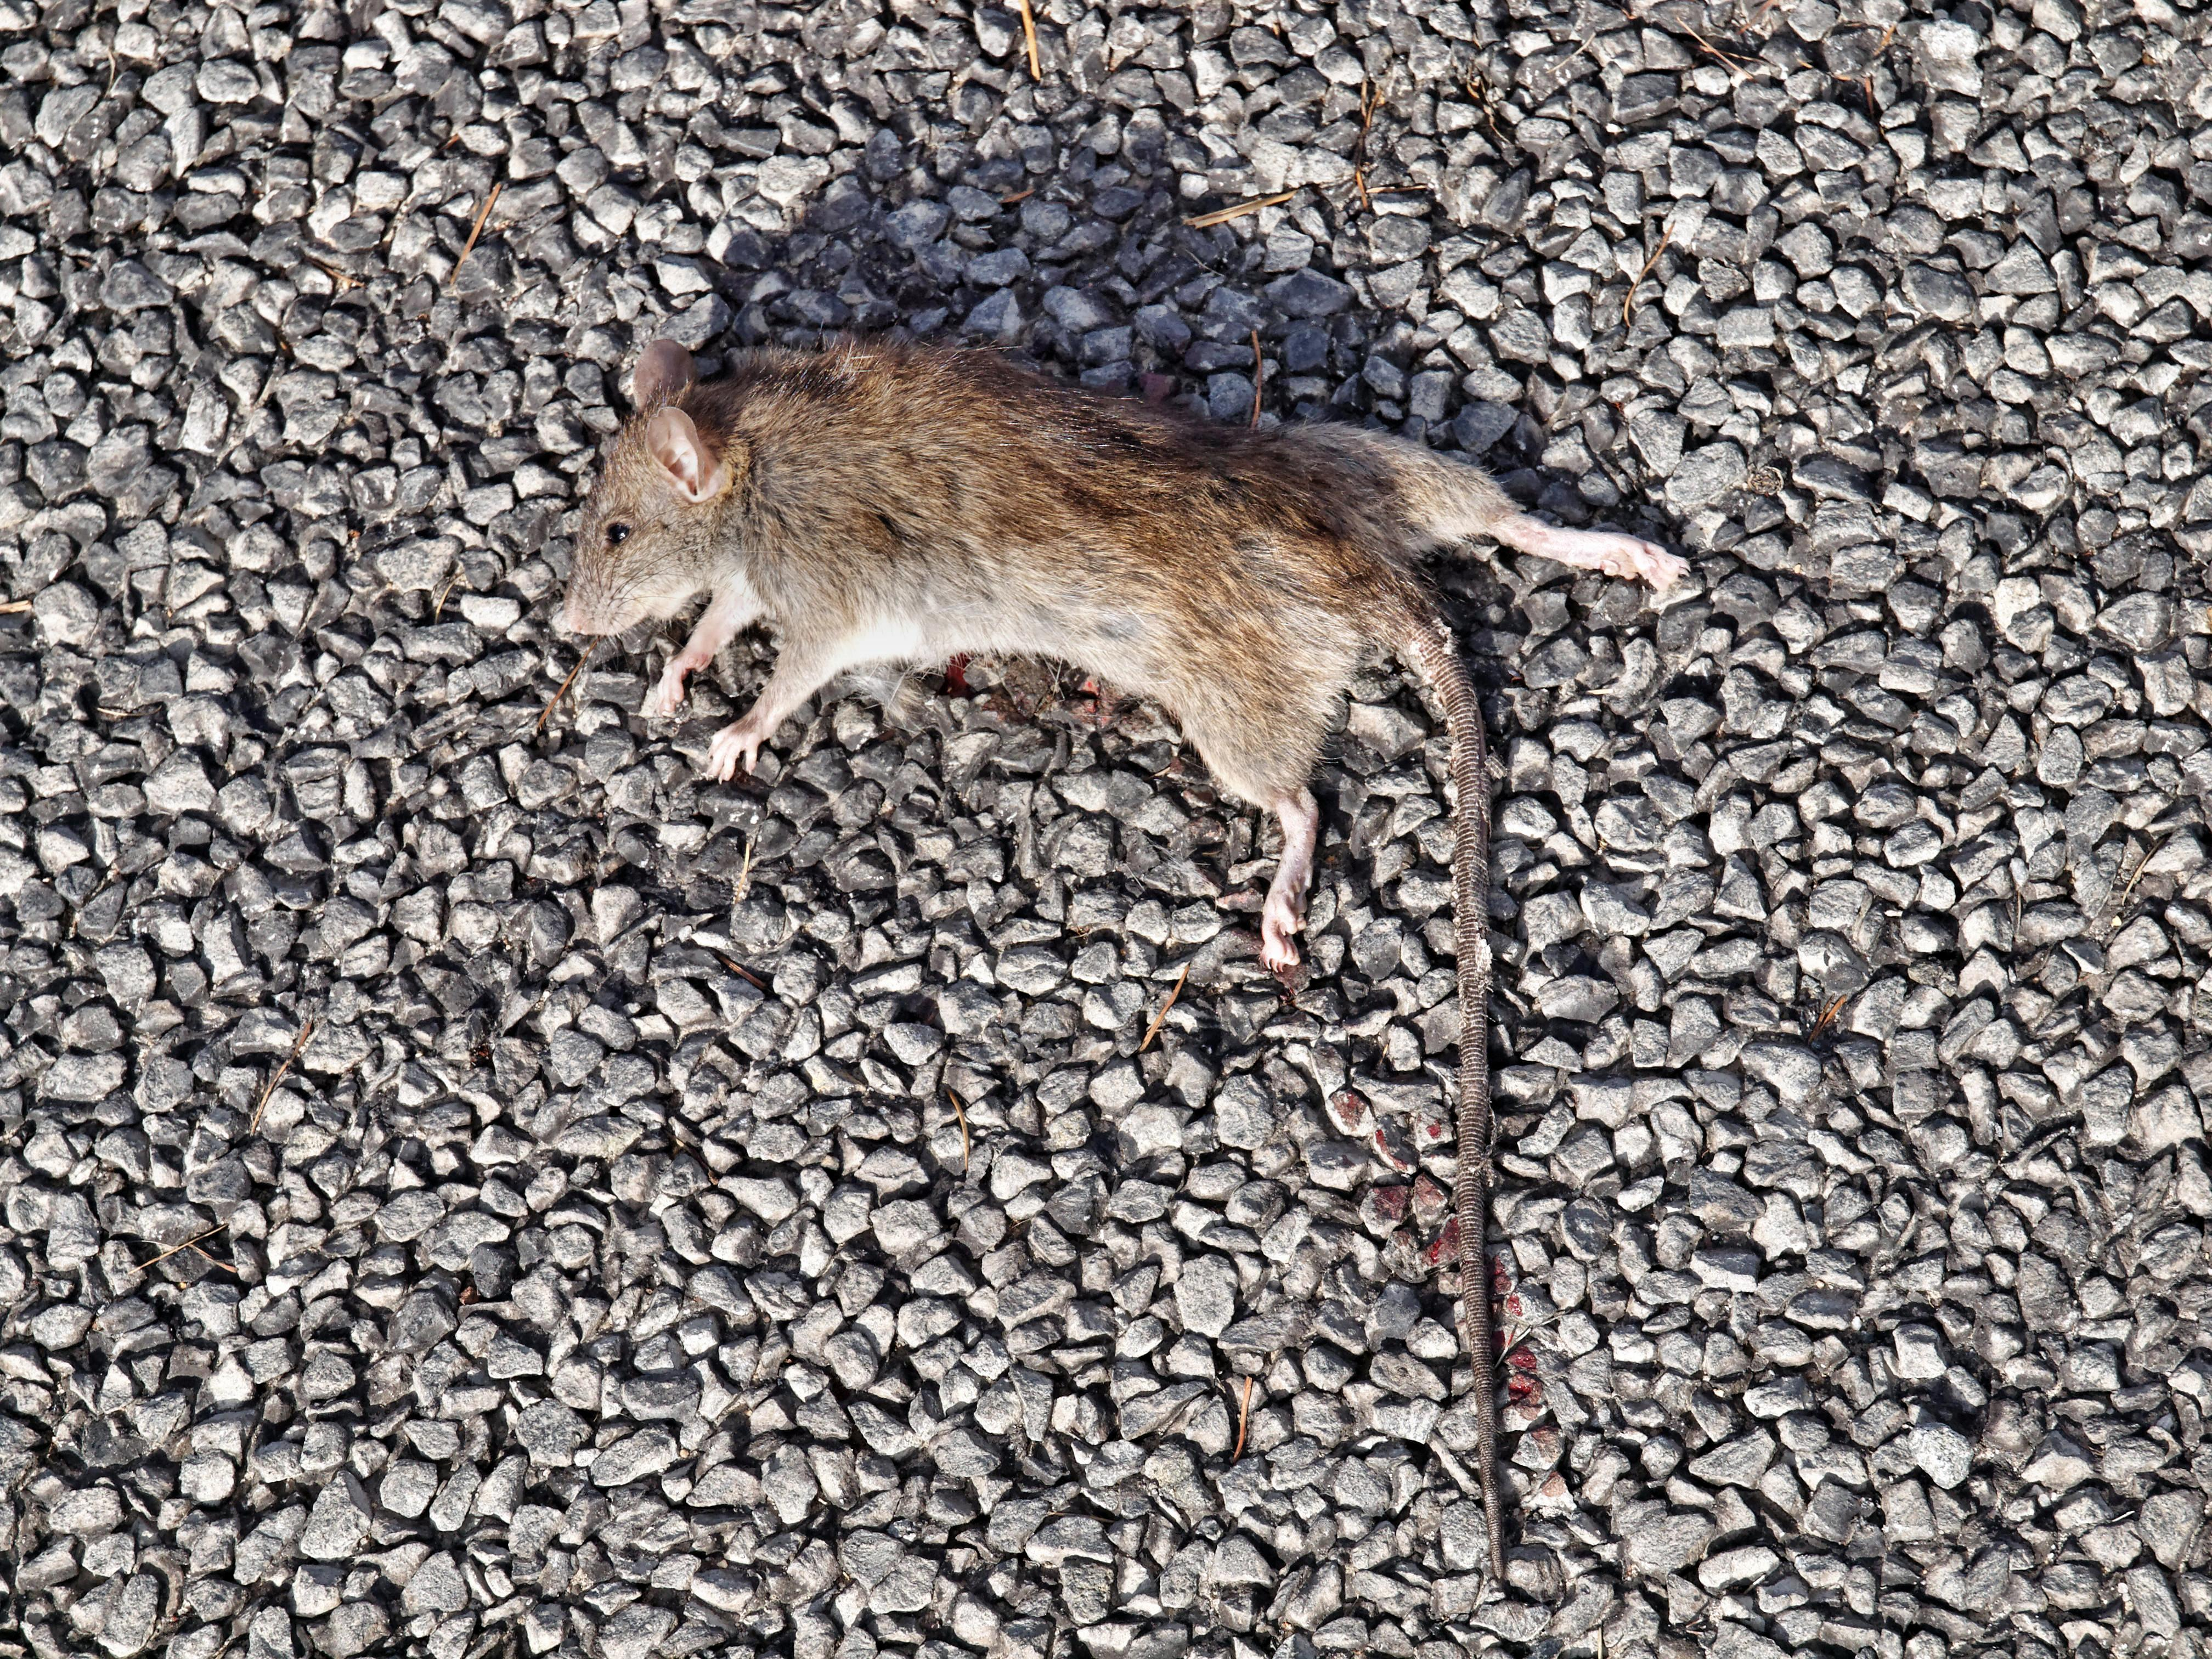 This should be Rat-2.jpeg.  Is it missing?